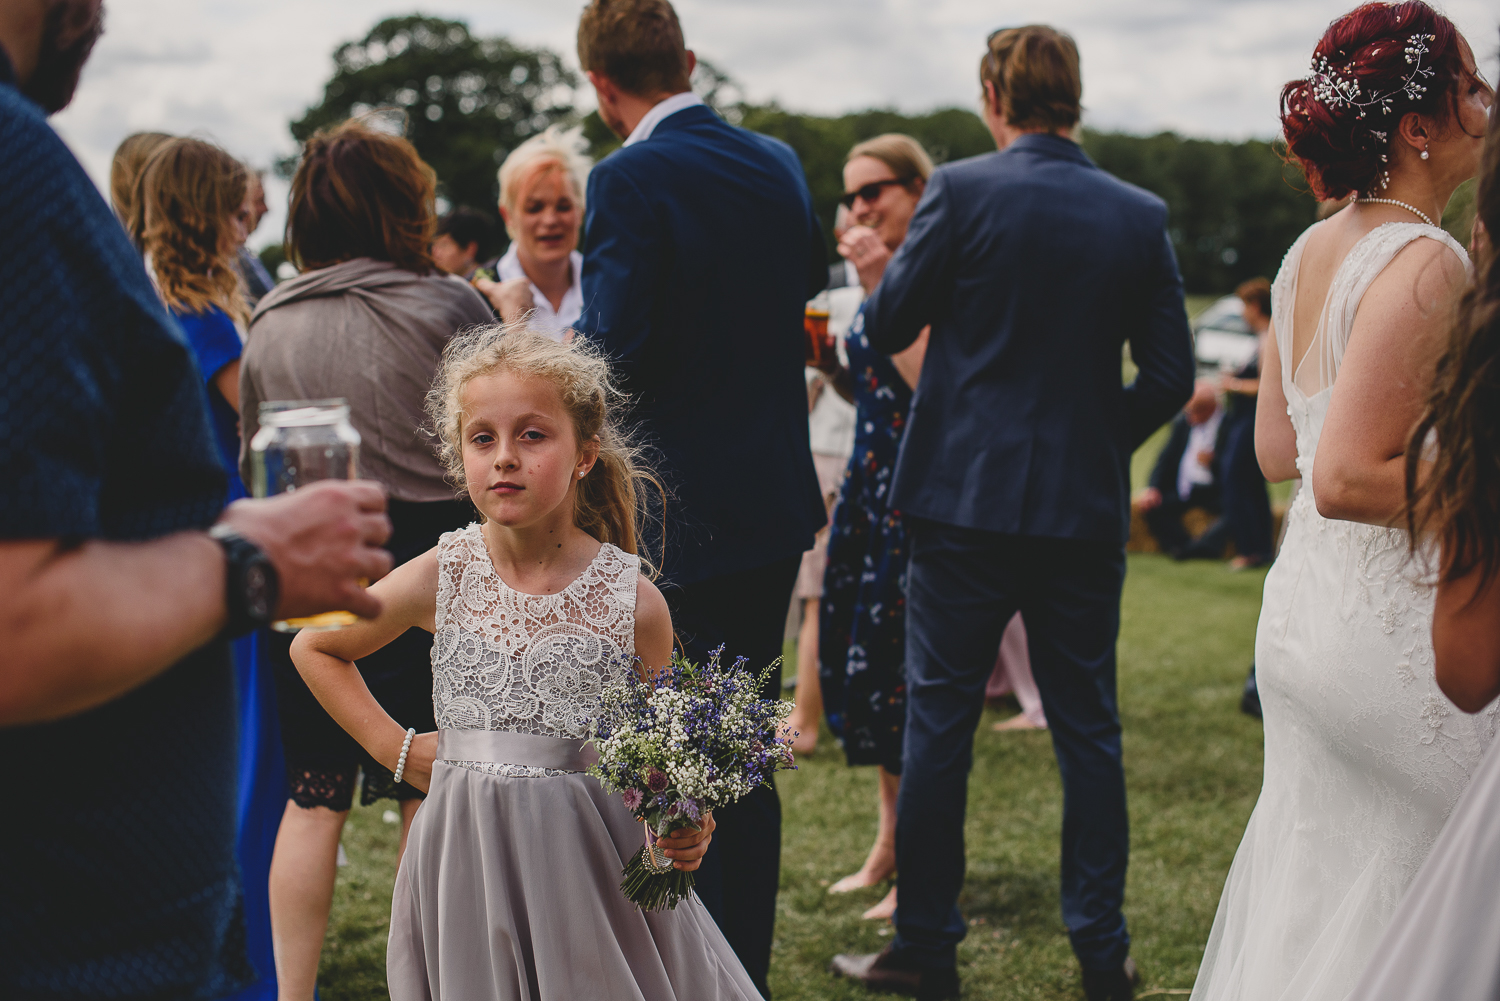 bridesmaid stands with hand on hip at wedding